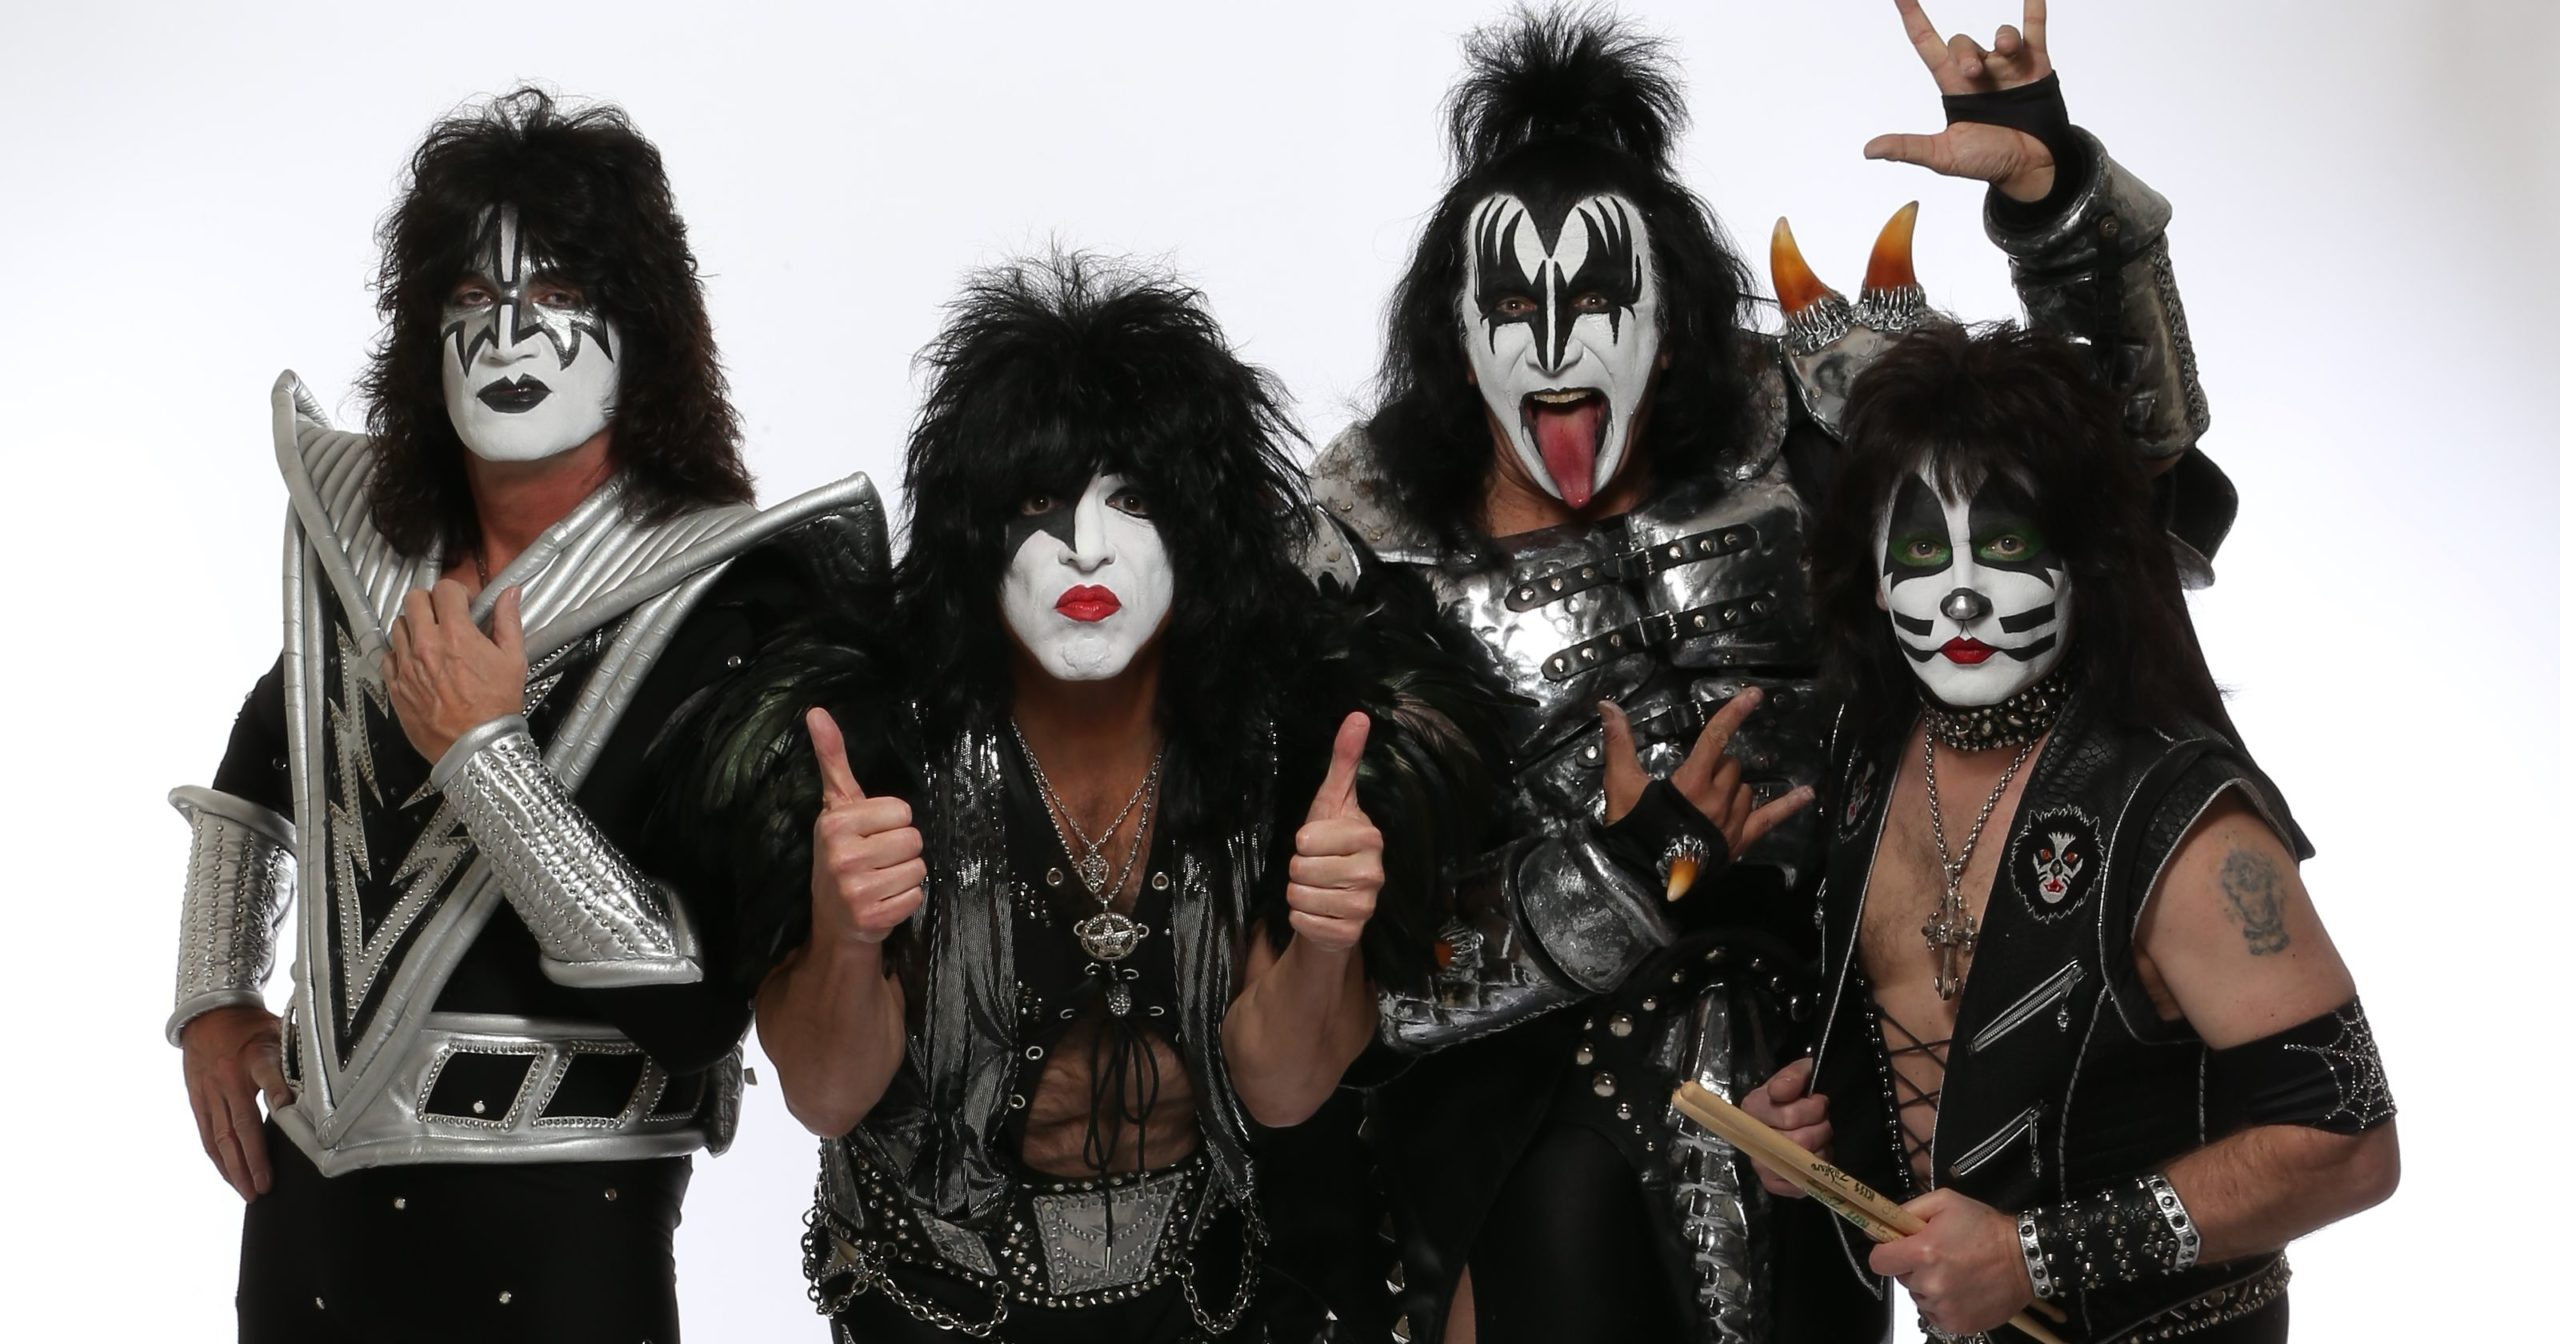 Moooove Over Gene Simmons There's a New Cow in Town!